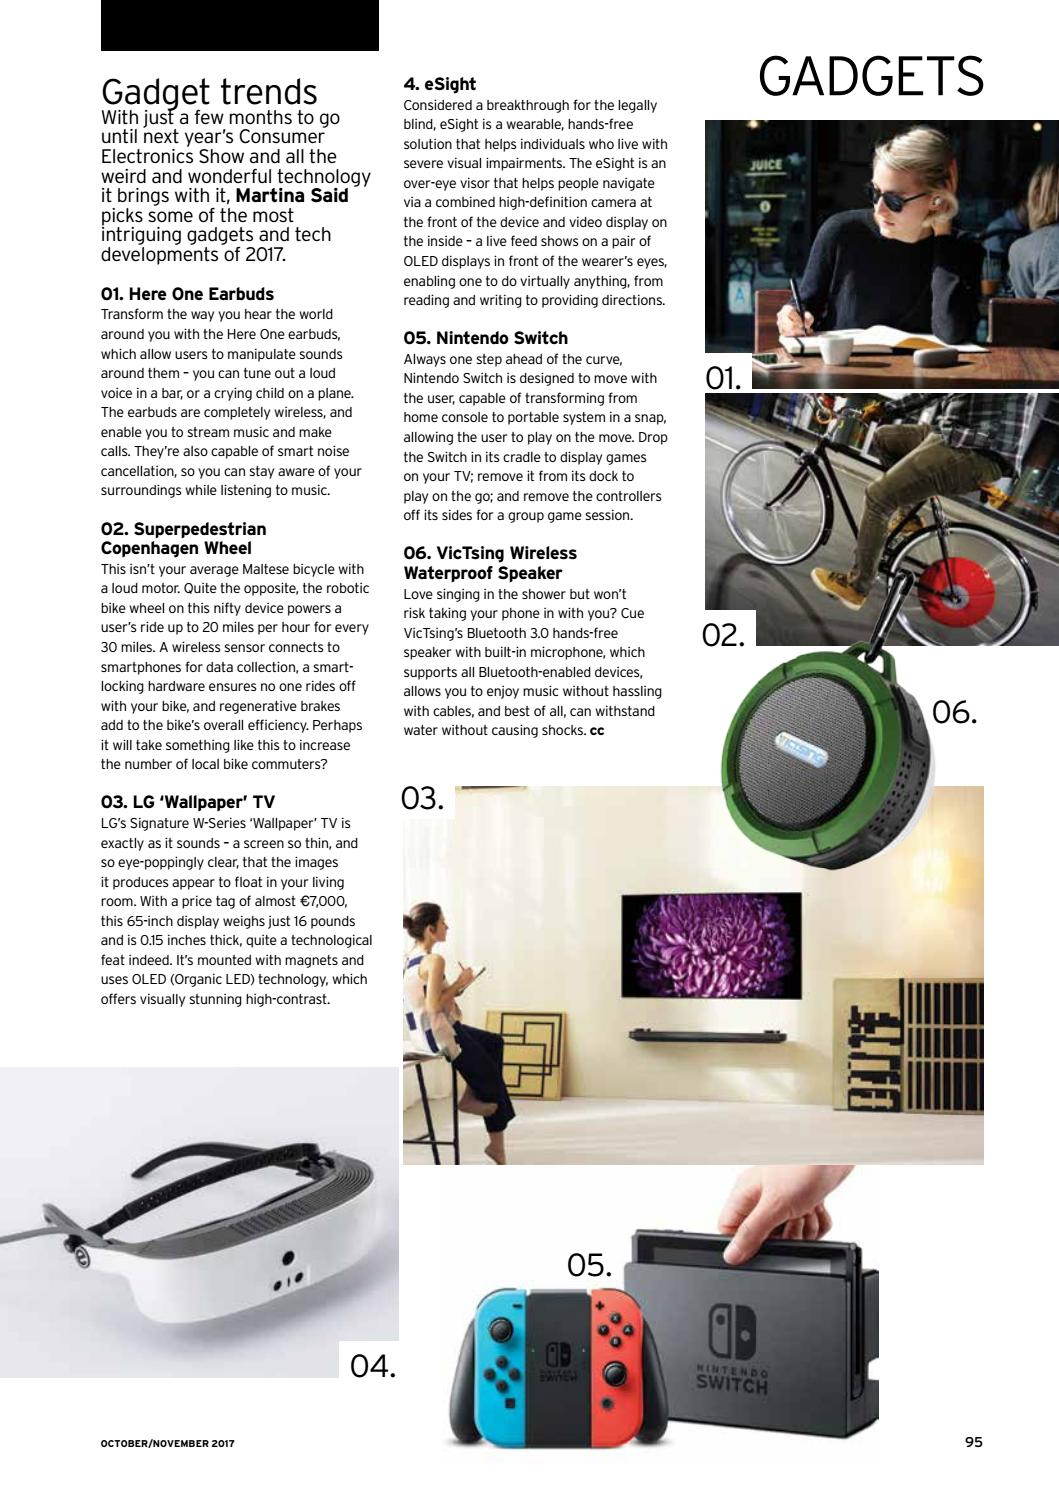 The Commercial Courier October/November 2017